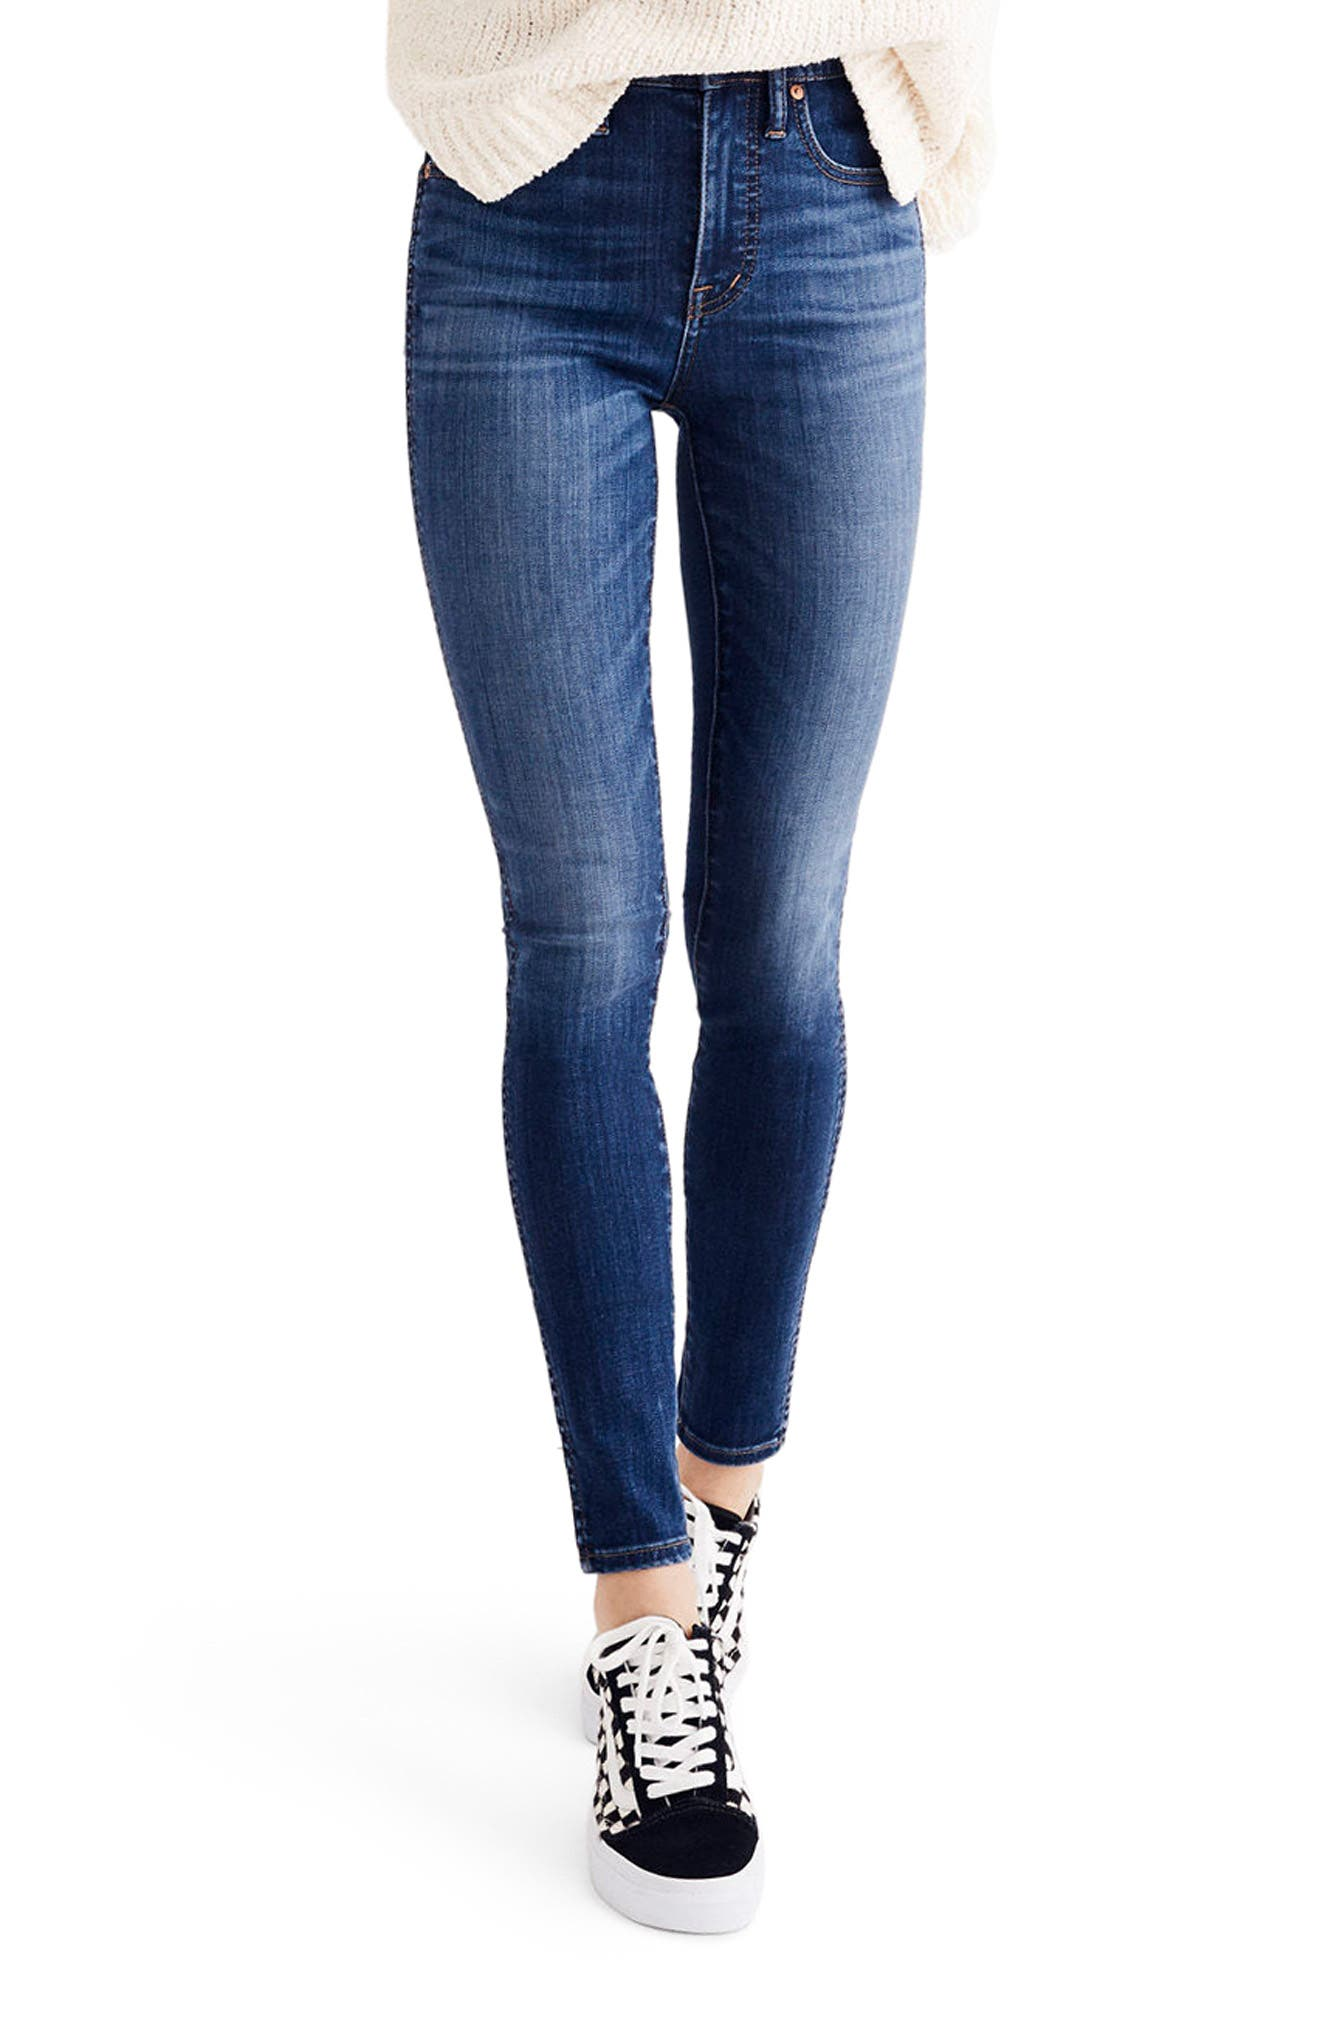 Alternate Image 1 Selected - Madewell 10-Inch High Waist Skinny Jeans (Danny)(Petite)